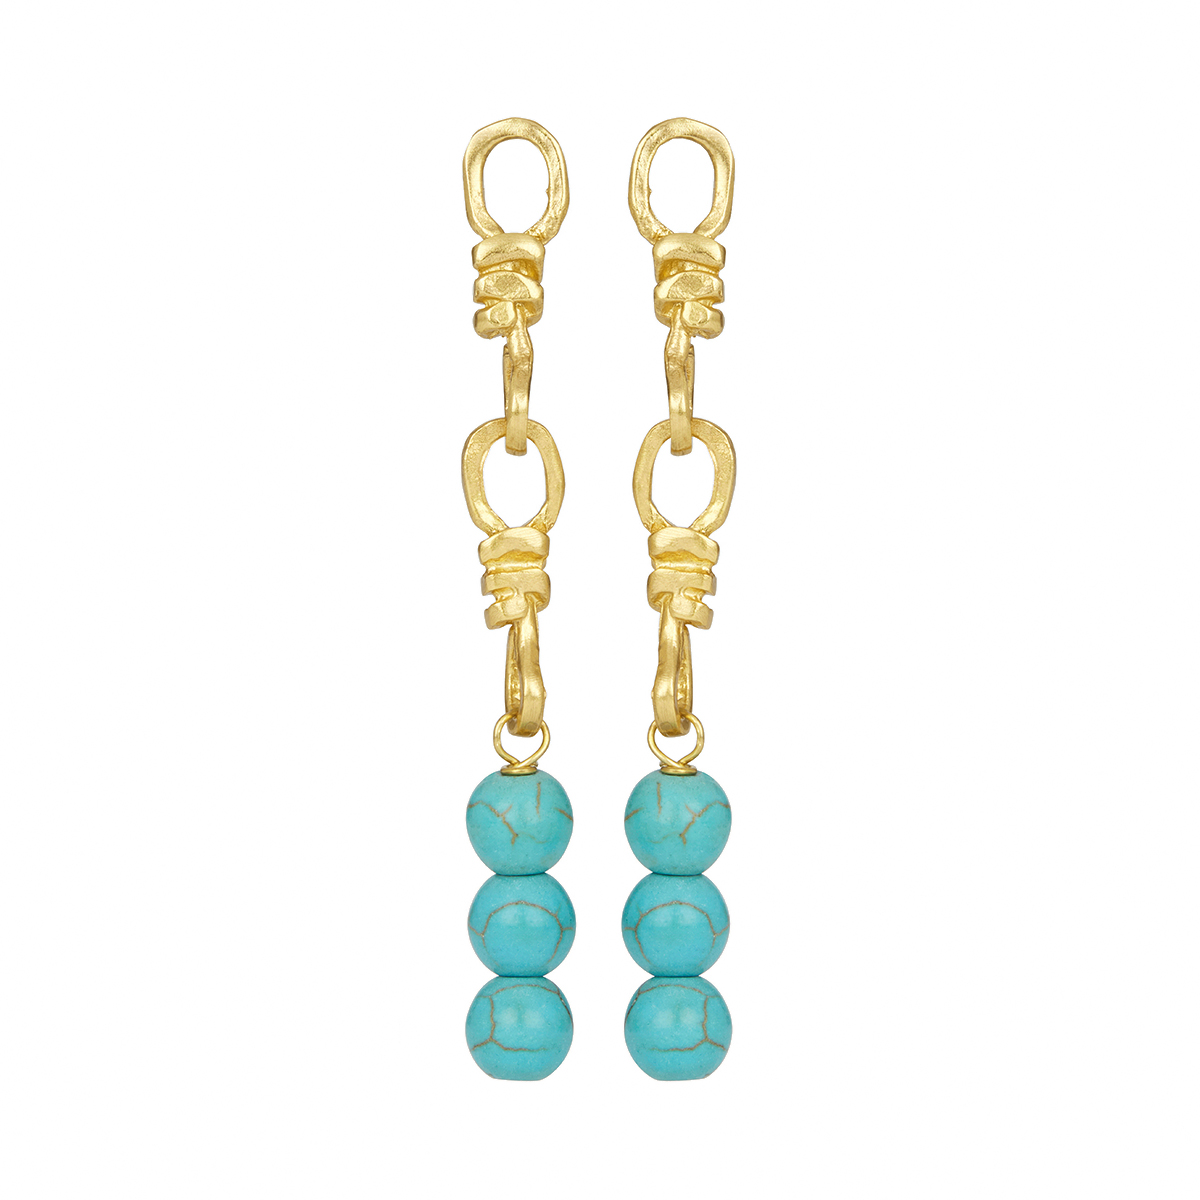 Long turquoise stud earrings by Ottoman Hands